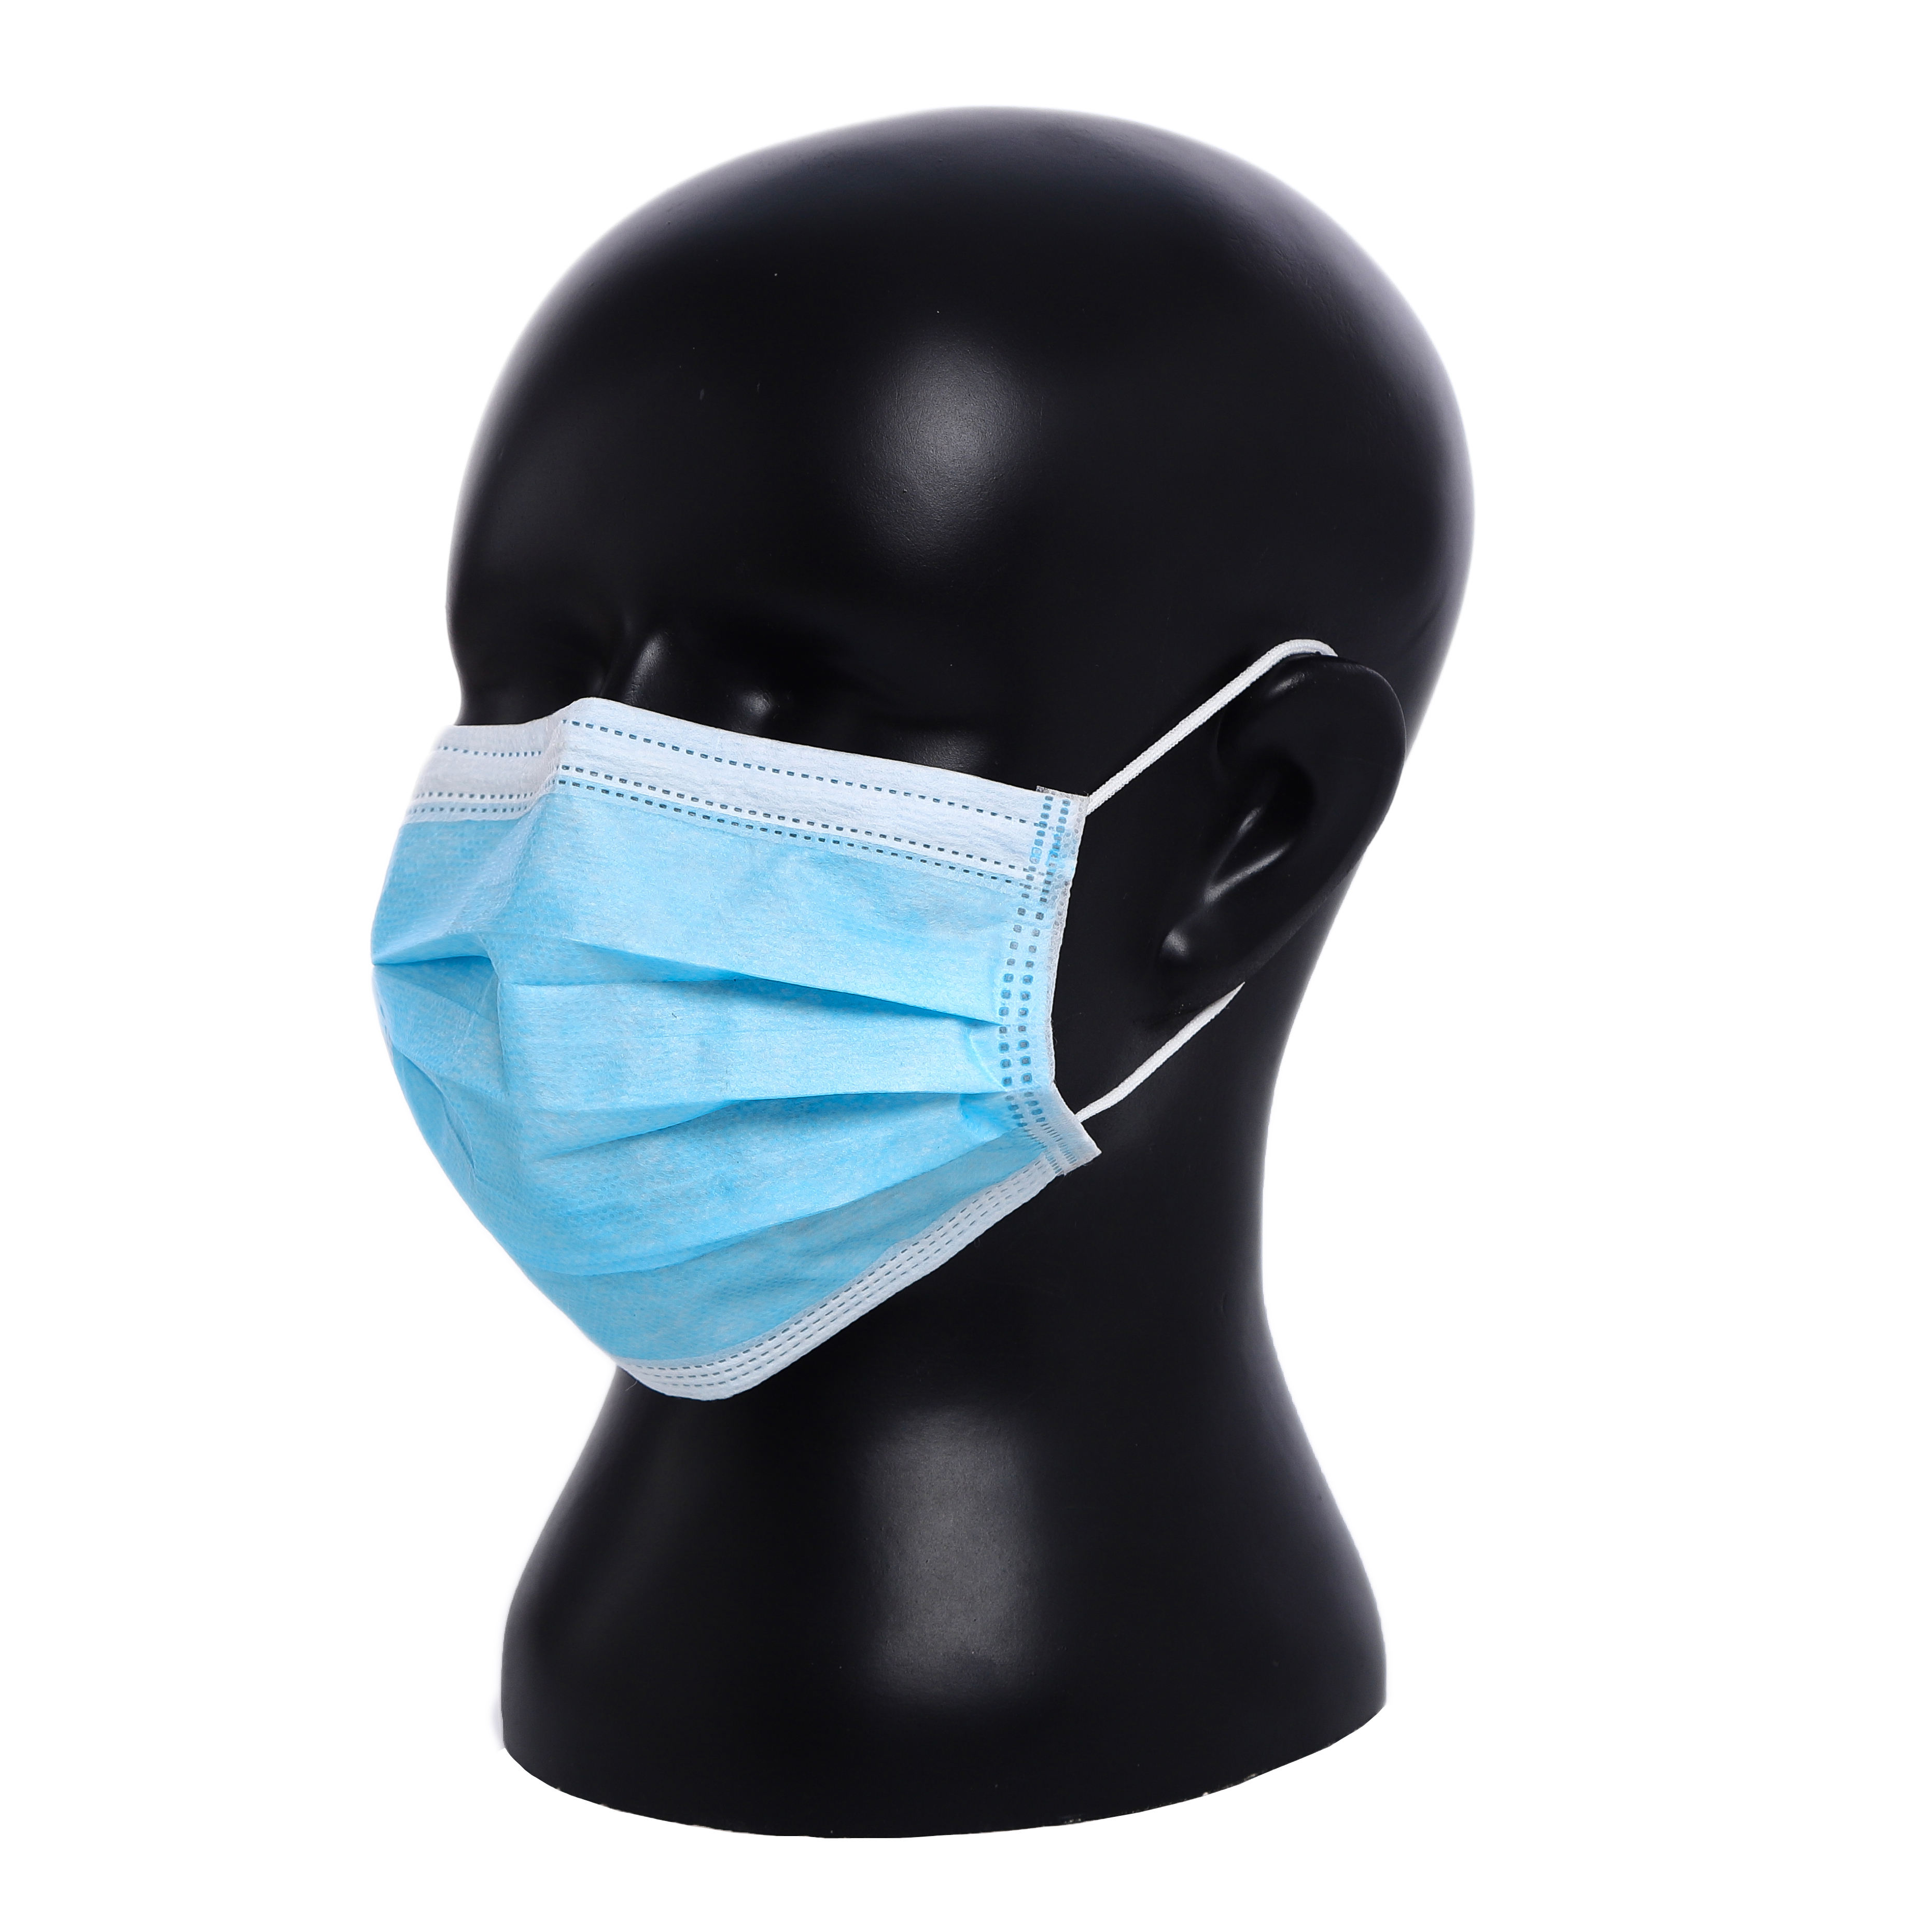 Type IIR Class II Face Protective Mask Non-Woven Disposable Earloop 3 Ply Surgical Mask